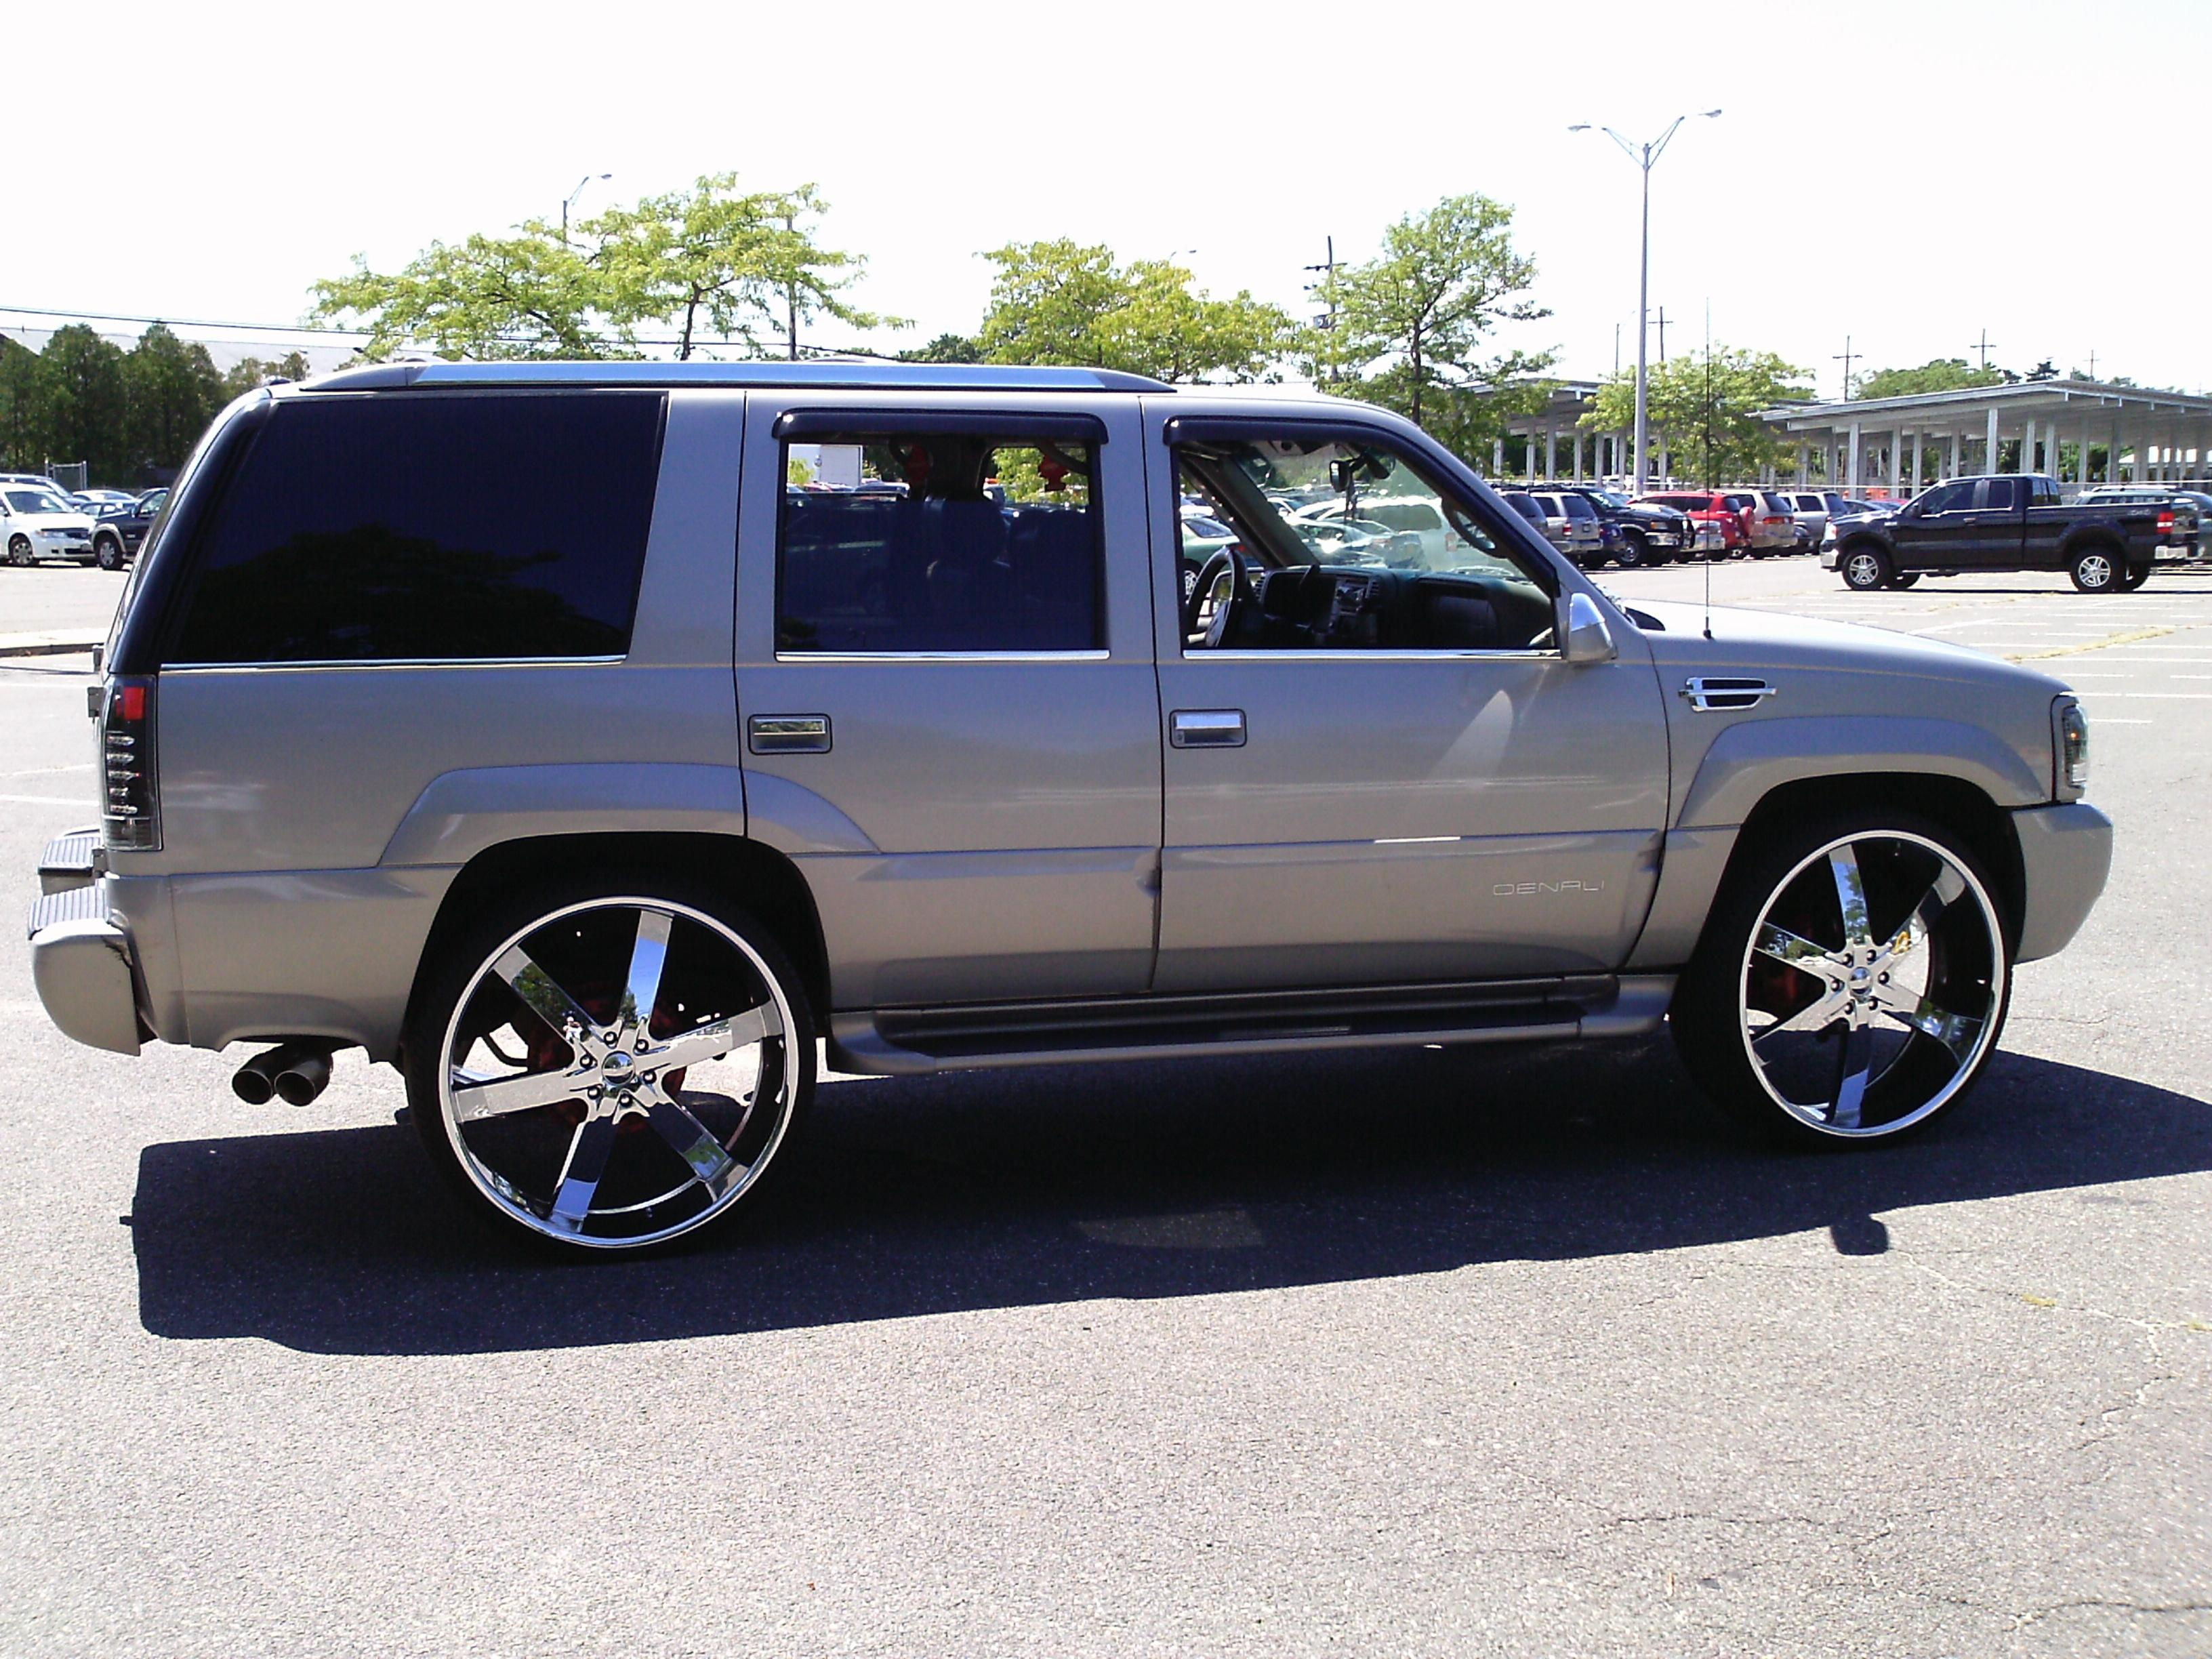 Mr 28 2000 Gmc Yukon Denalisport Utility 4d Specs Photos